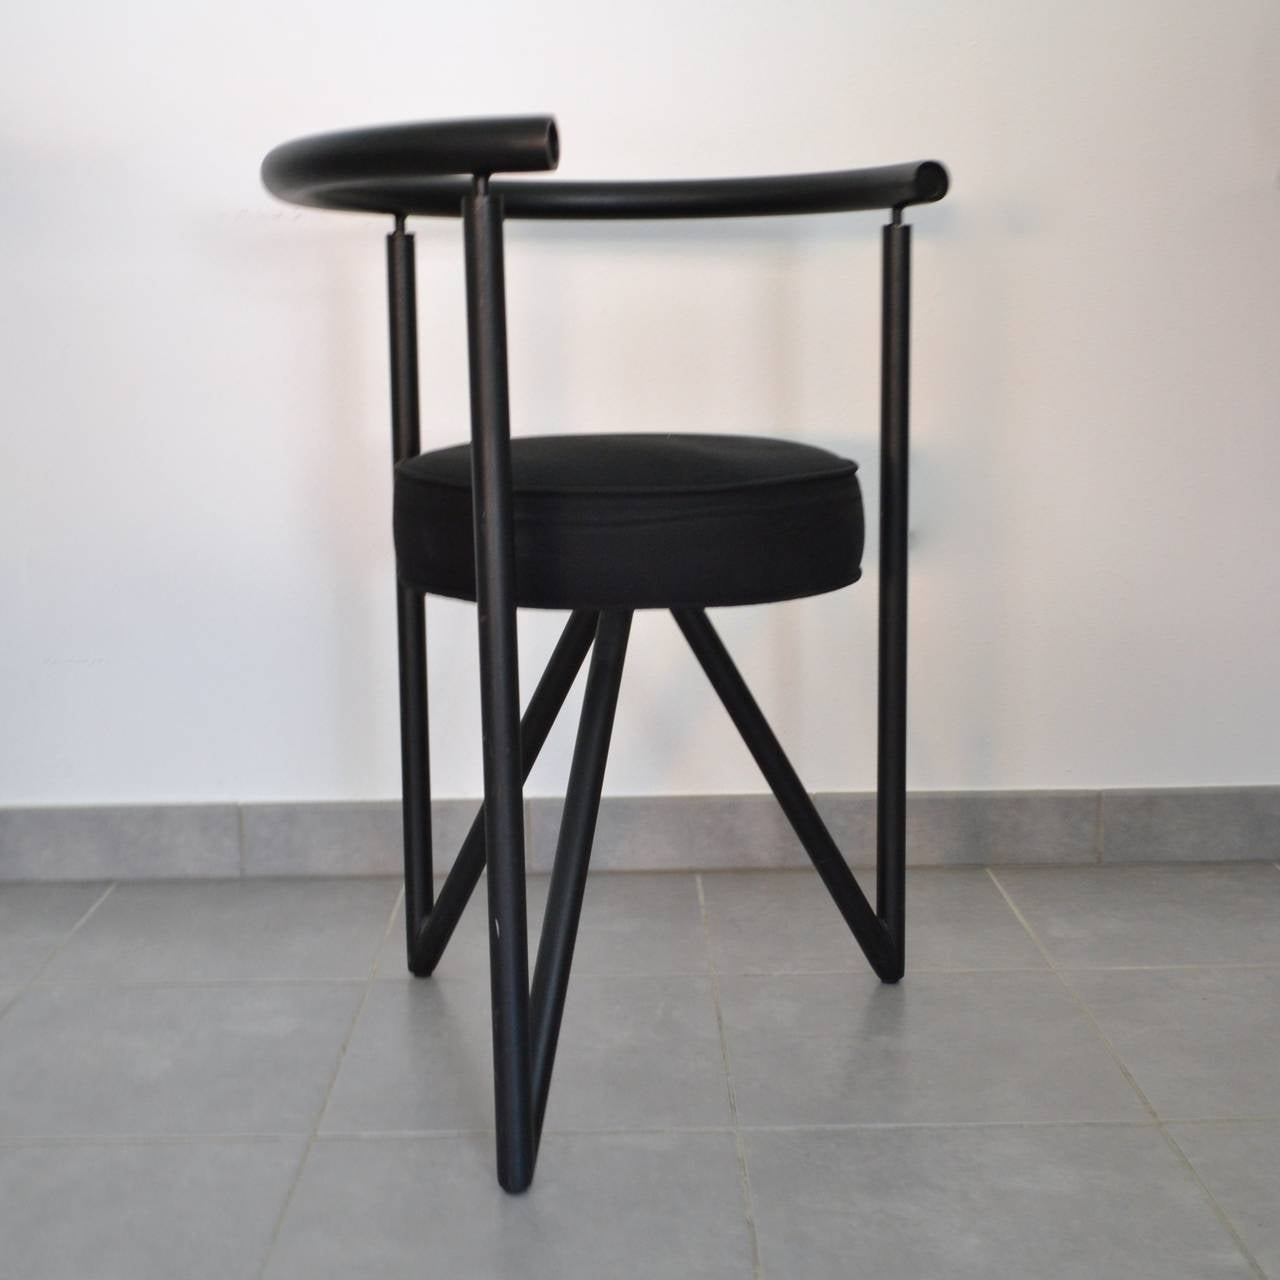 Set of four miss dorn chairs by philippe starck 1982 at 1stdibs - Chaises philippe starck ...